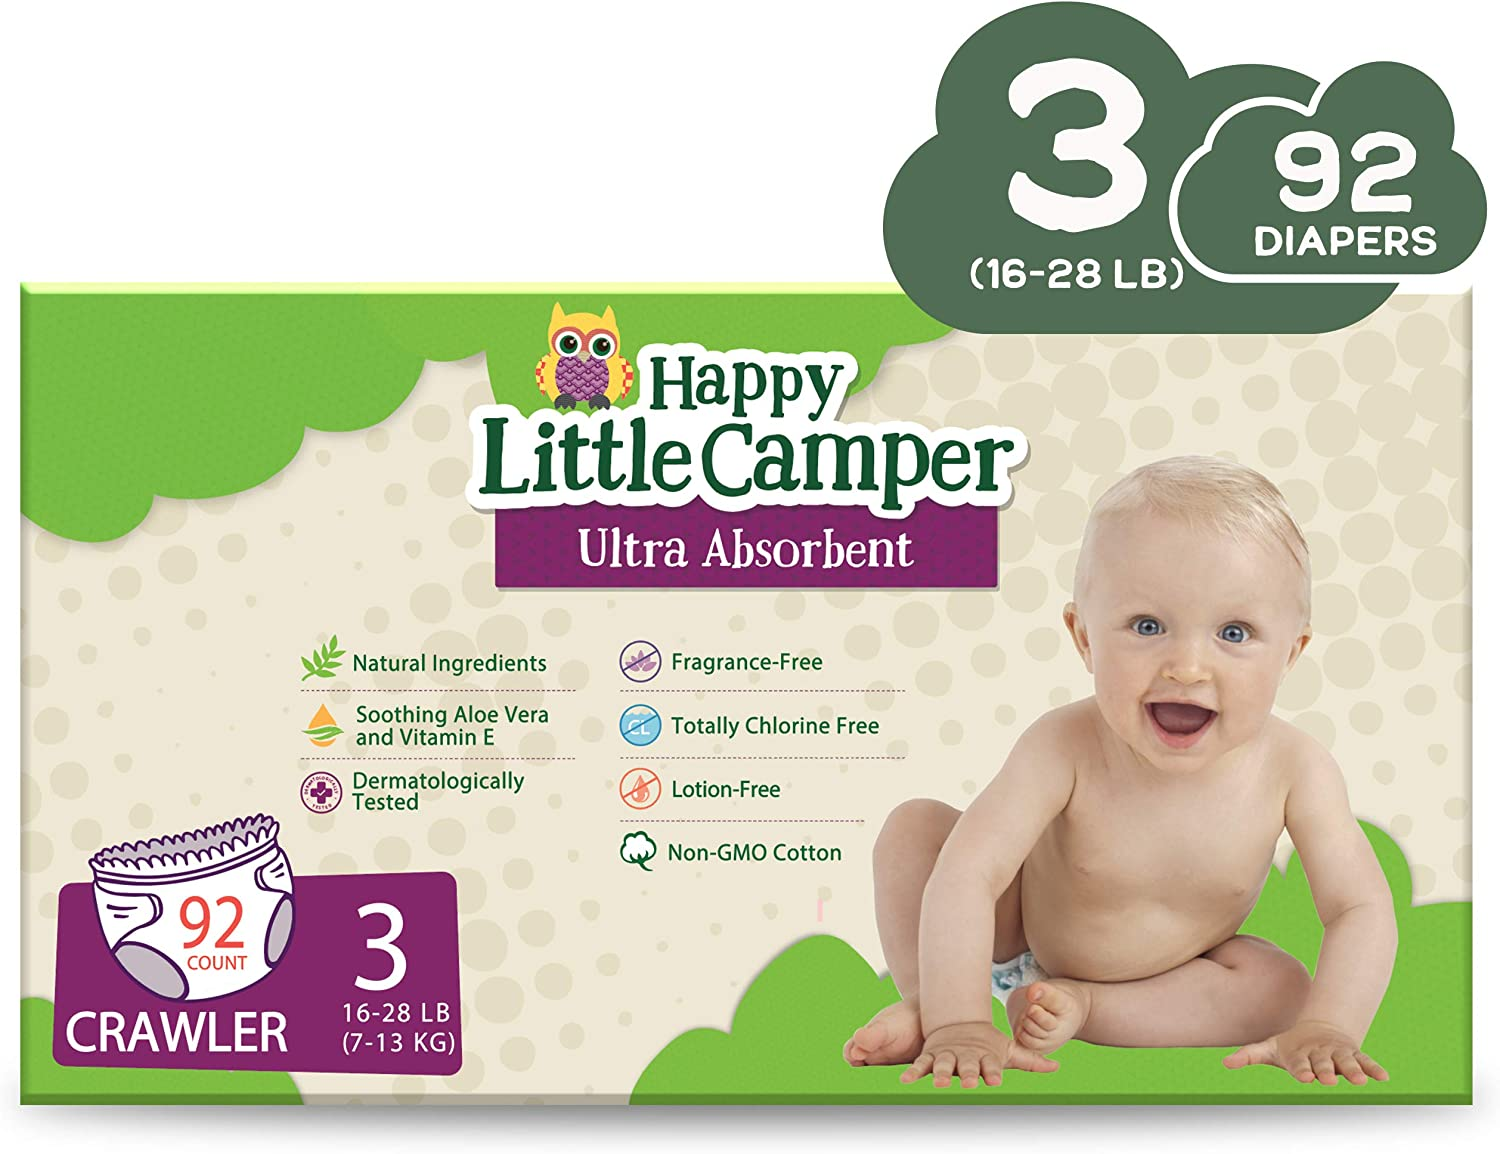 92 Count Size 3 Happy Little Camper x Hilary Duff Ultra-Absorbent Hypoallergenic Natural Baby Diapers with Bio-Core Blend and Strong Latex and Chlorine-Free Protection